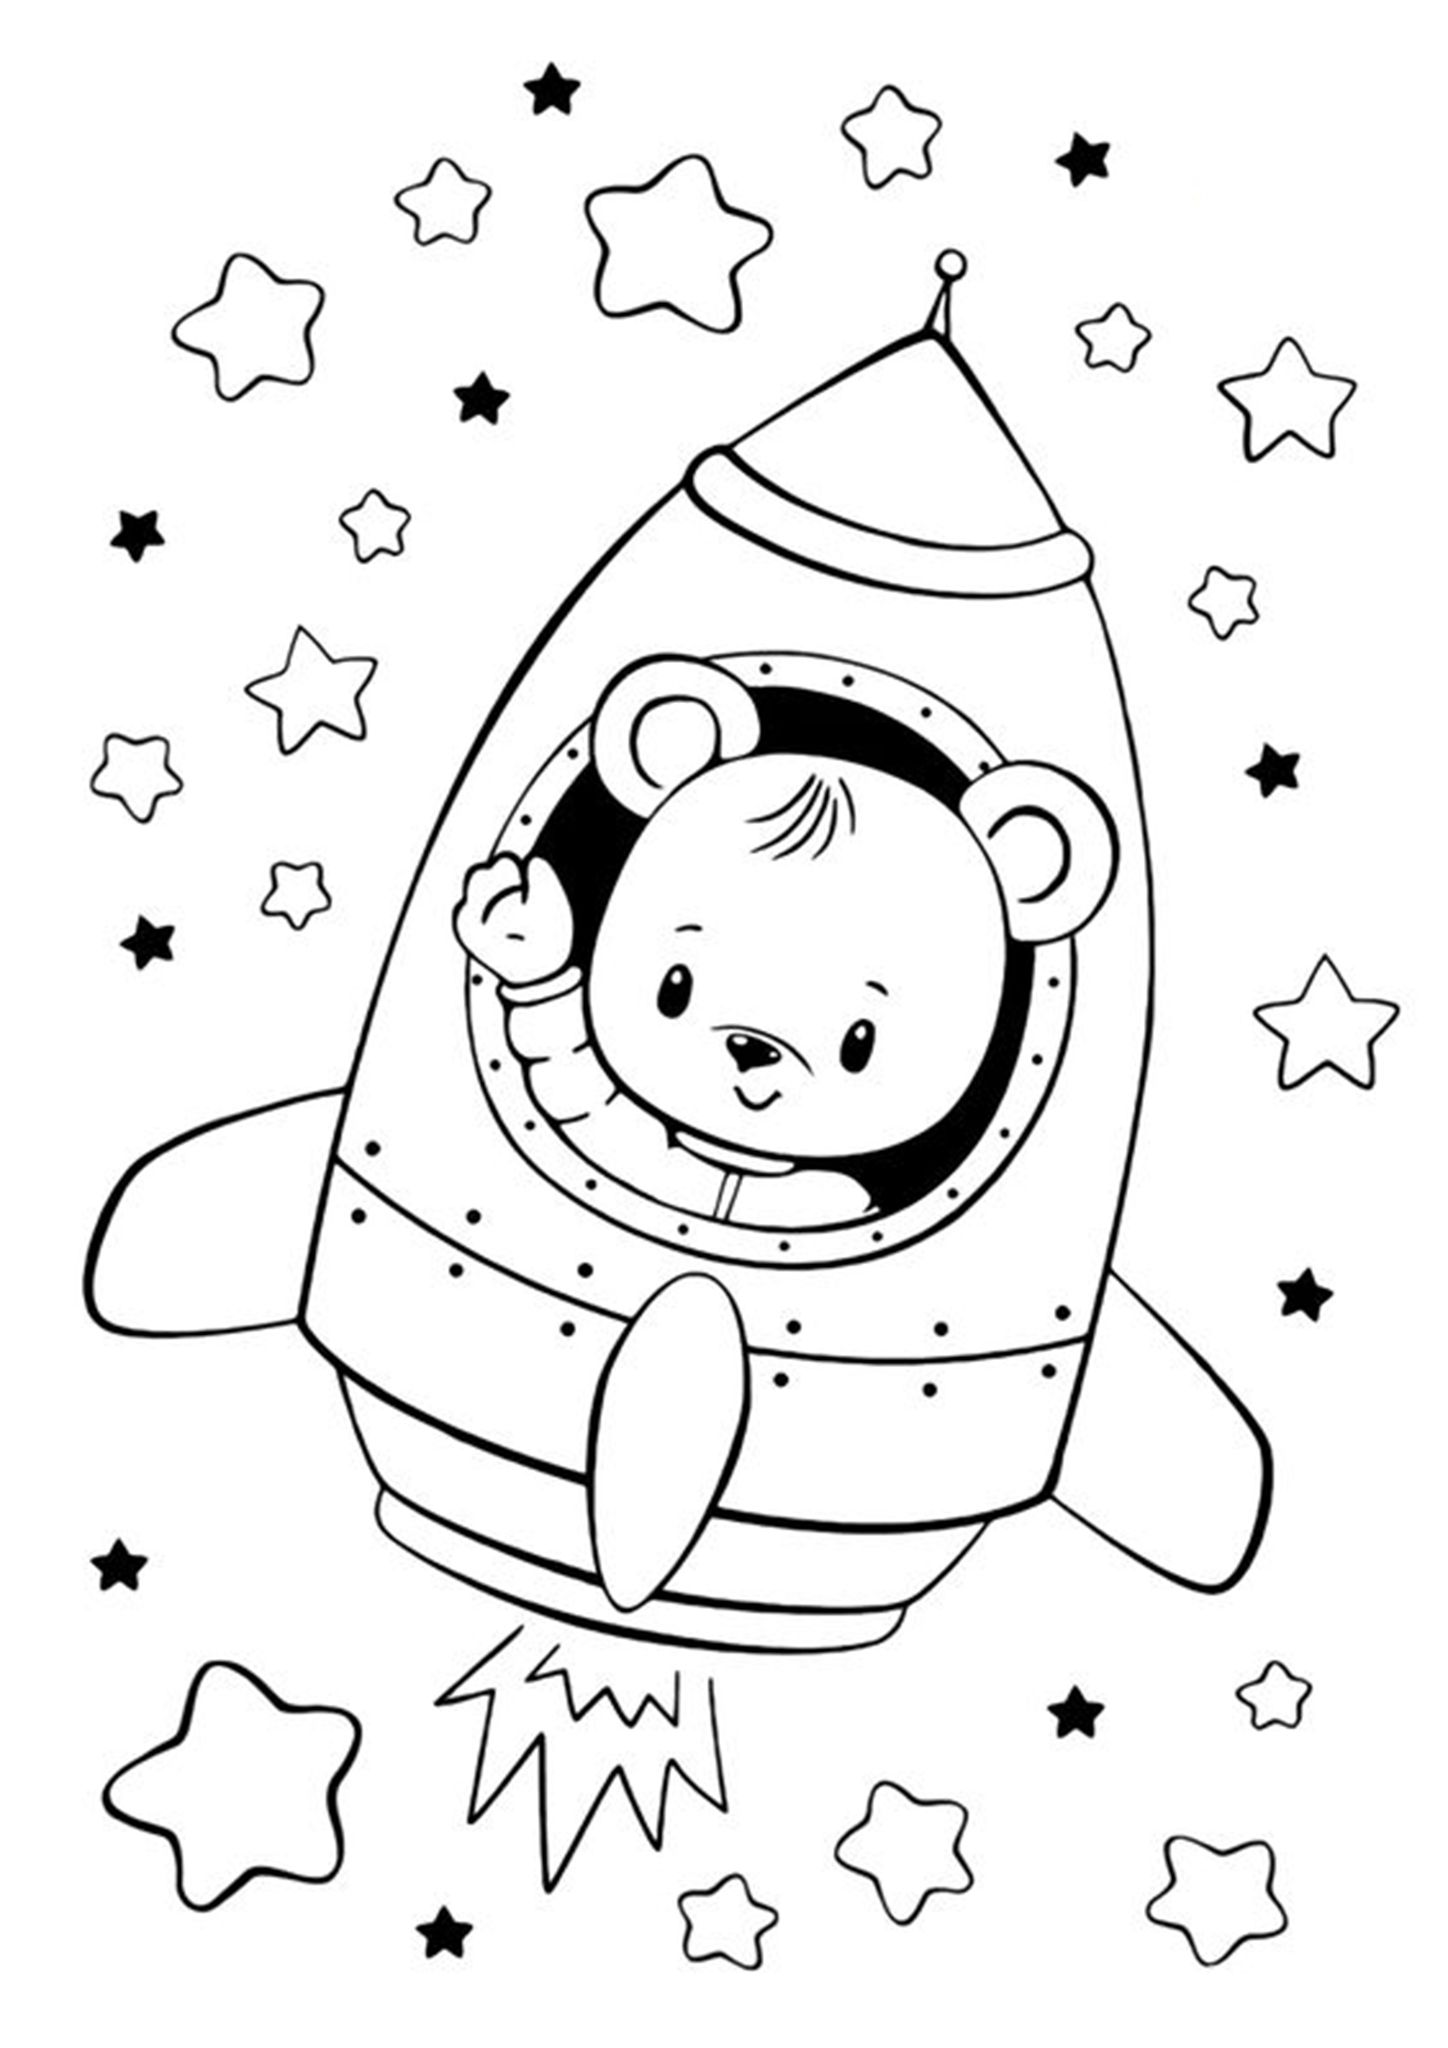 Free Easy To Print Cute Coloring Pages Free Kids Coloring Pages Cute Coloring Pages Kids Coloring Books